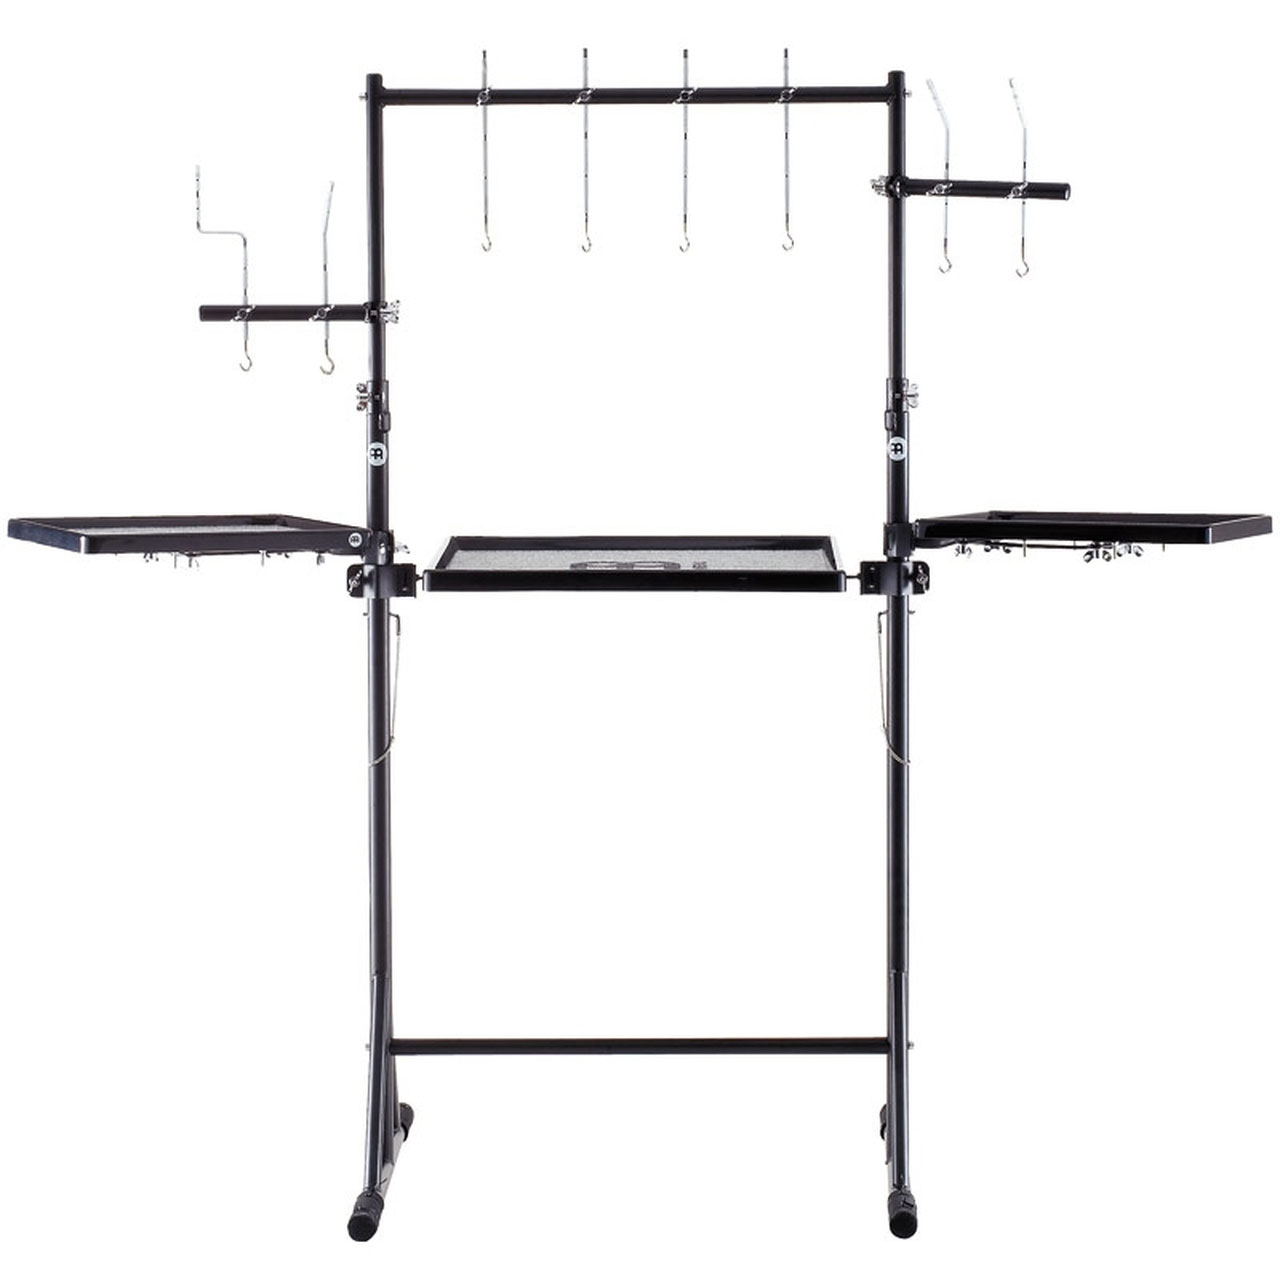 Meinl Professional Percussion Workstation